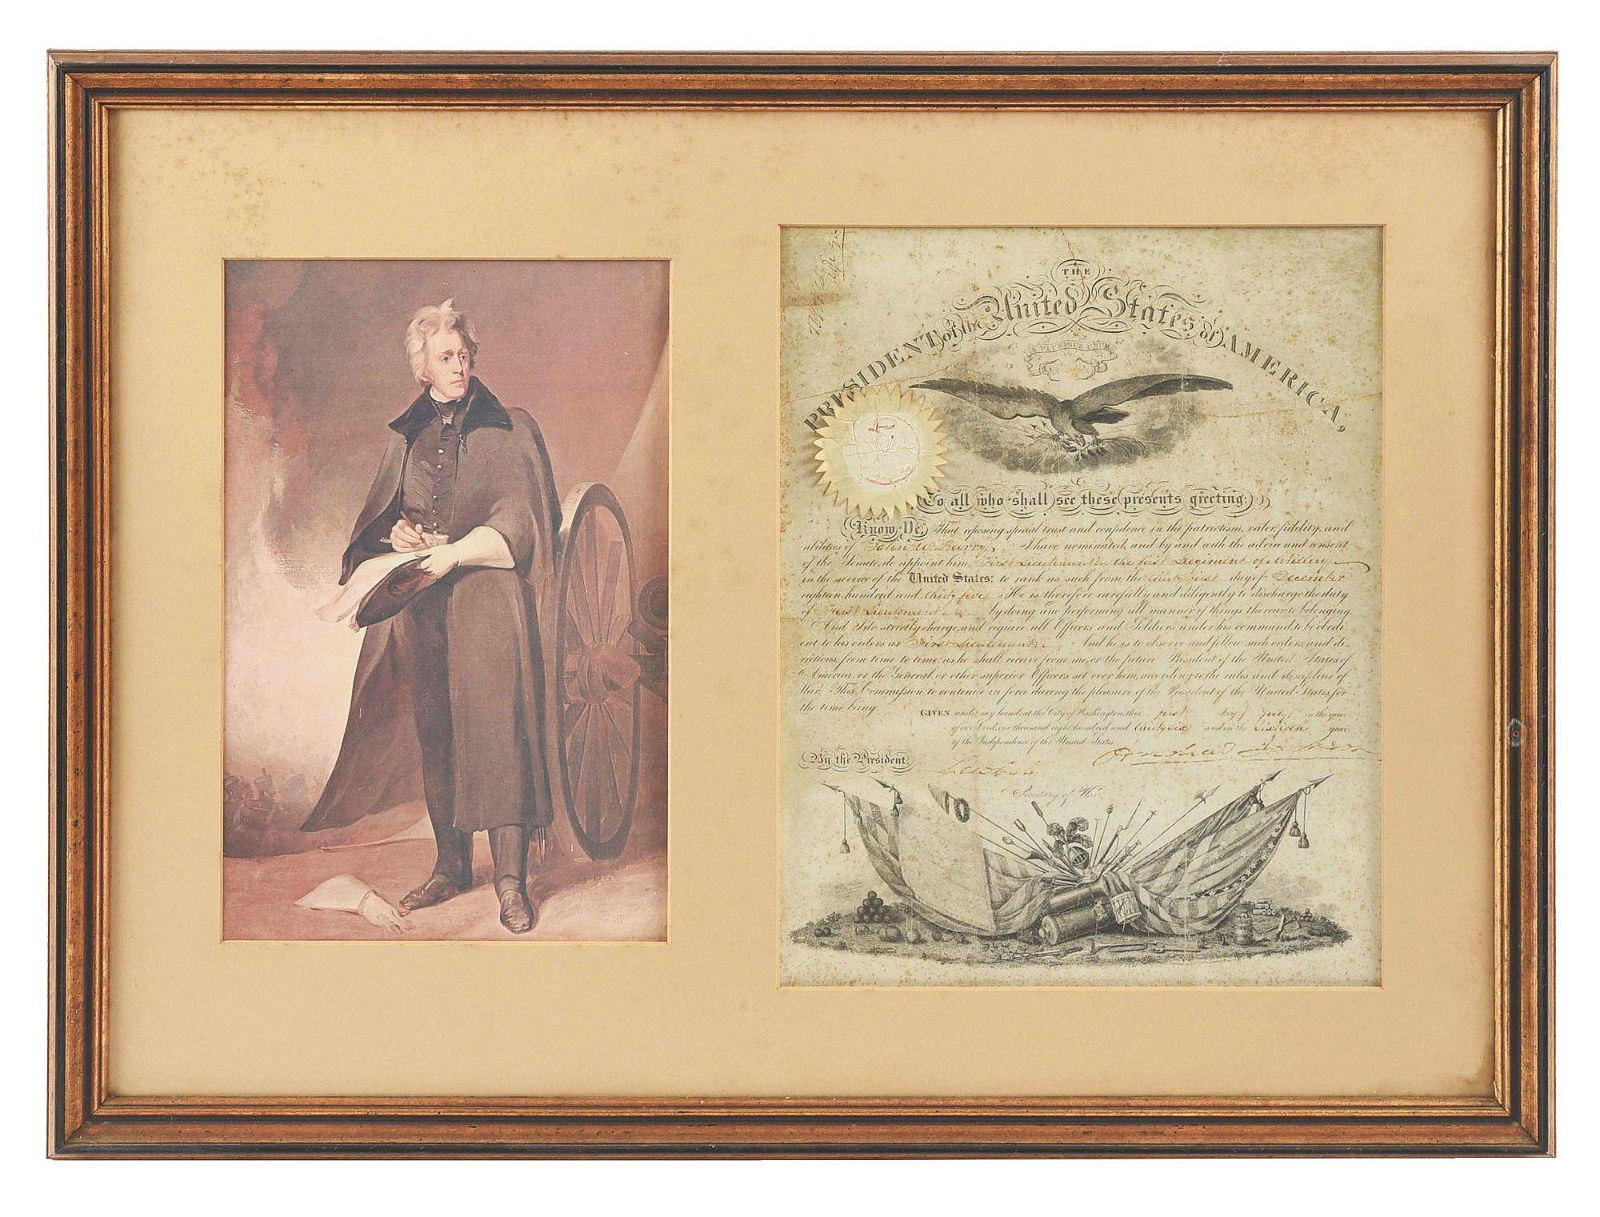 LARGE MATTED AND FRAMED ANDREW JACKSON SIGNED DOCUMENT